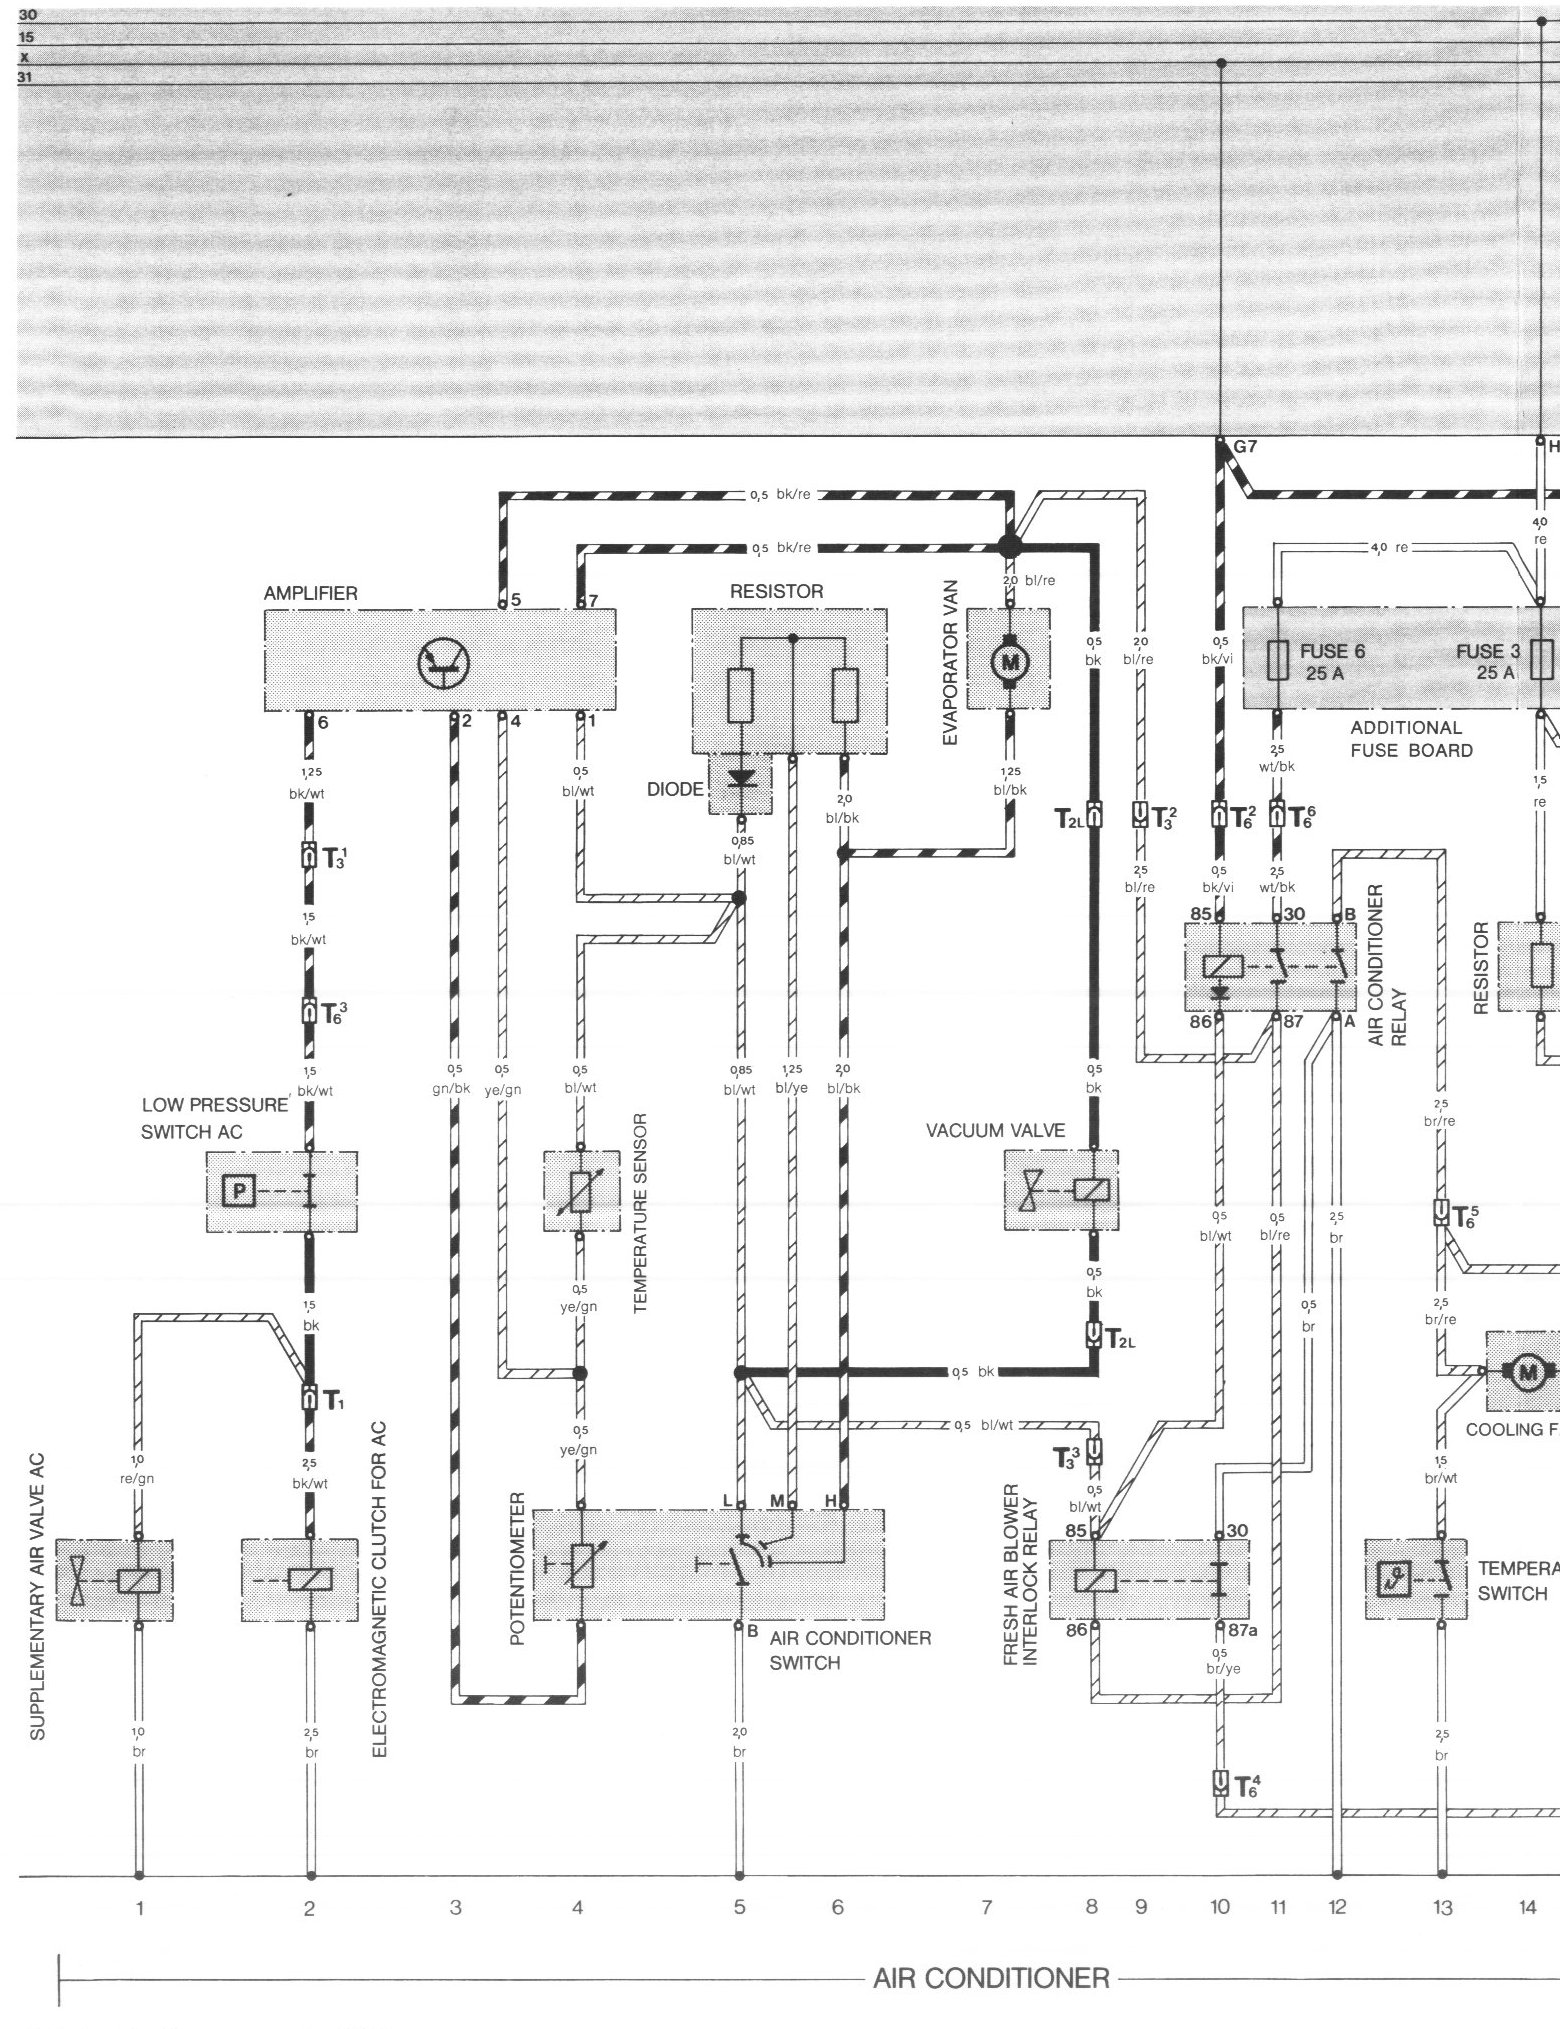 pelican parts porsche 924 944 electrical diagrams rh pelicanparts com porsche 968 radio wiring diagram porsche 944 wiring diagram pdf